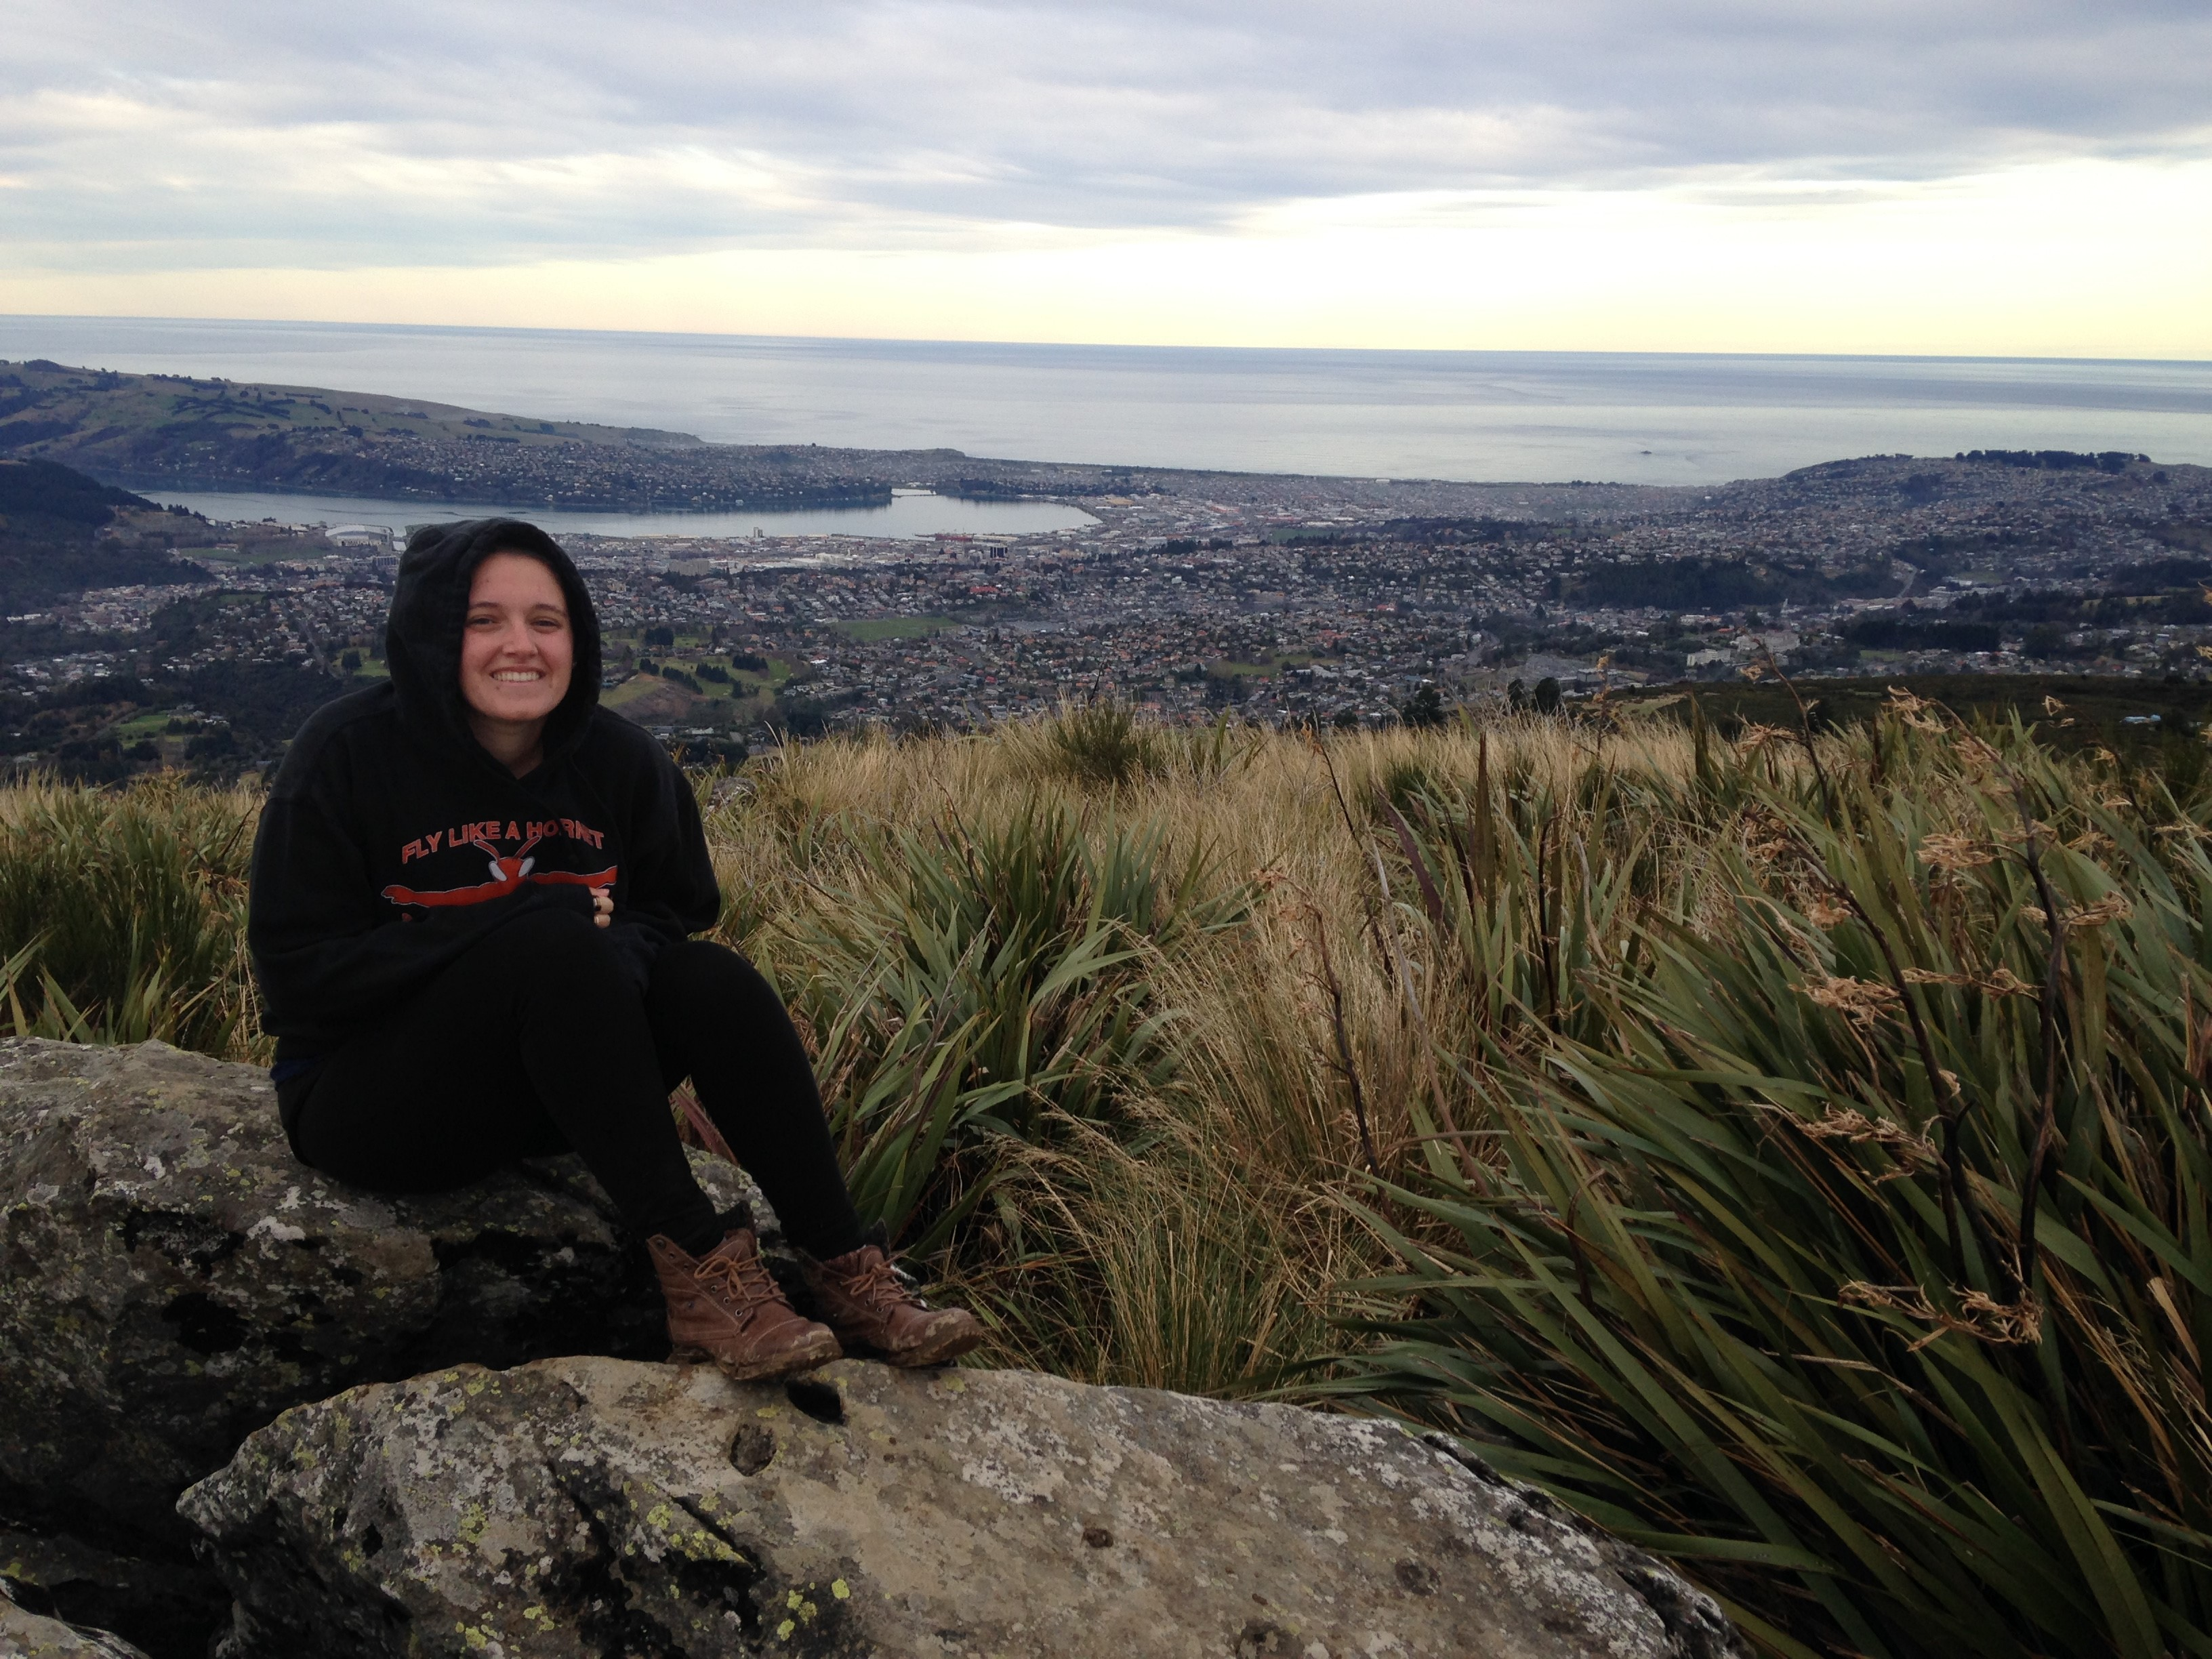 Etown Study Abroad - About | Facebook